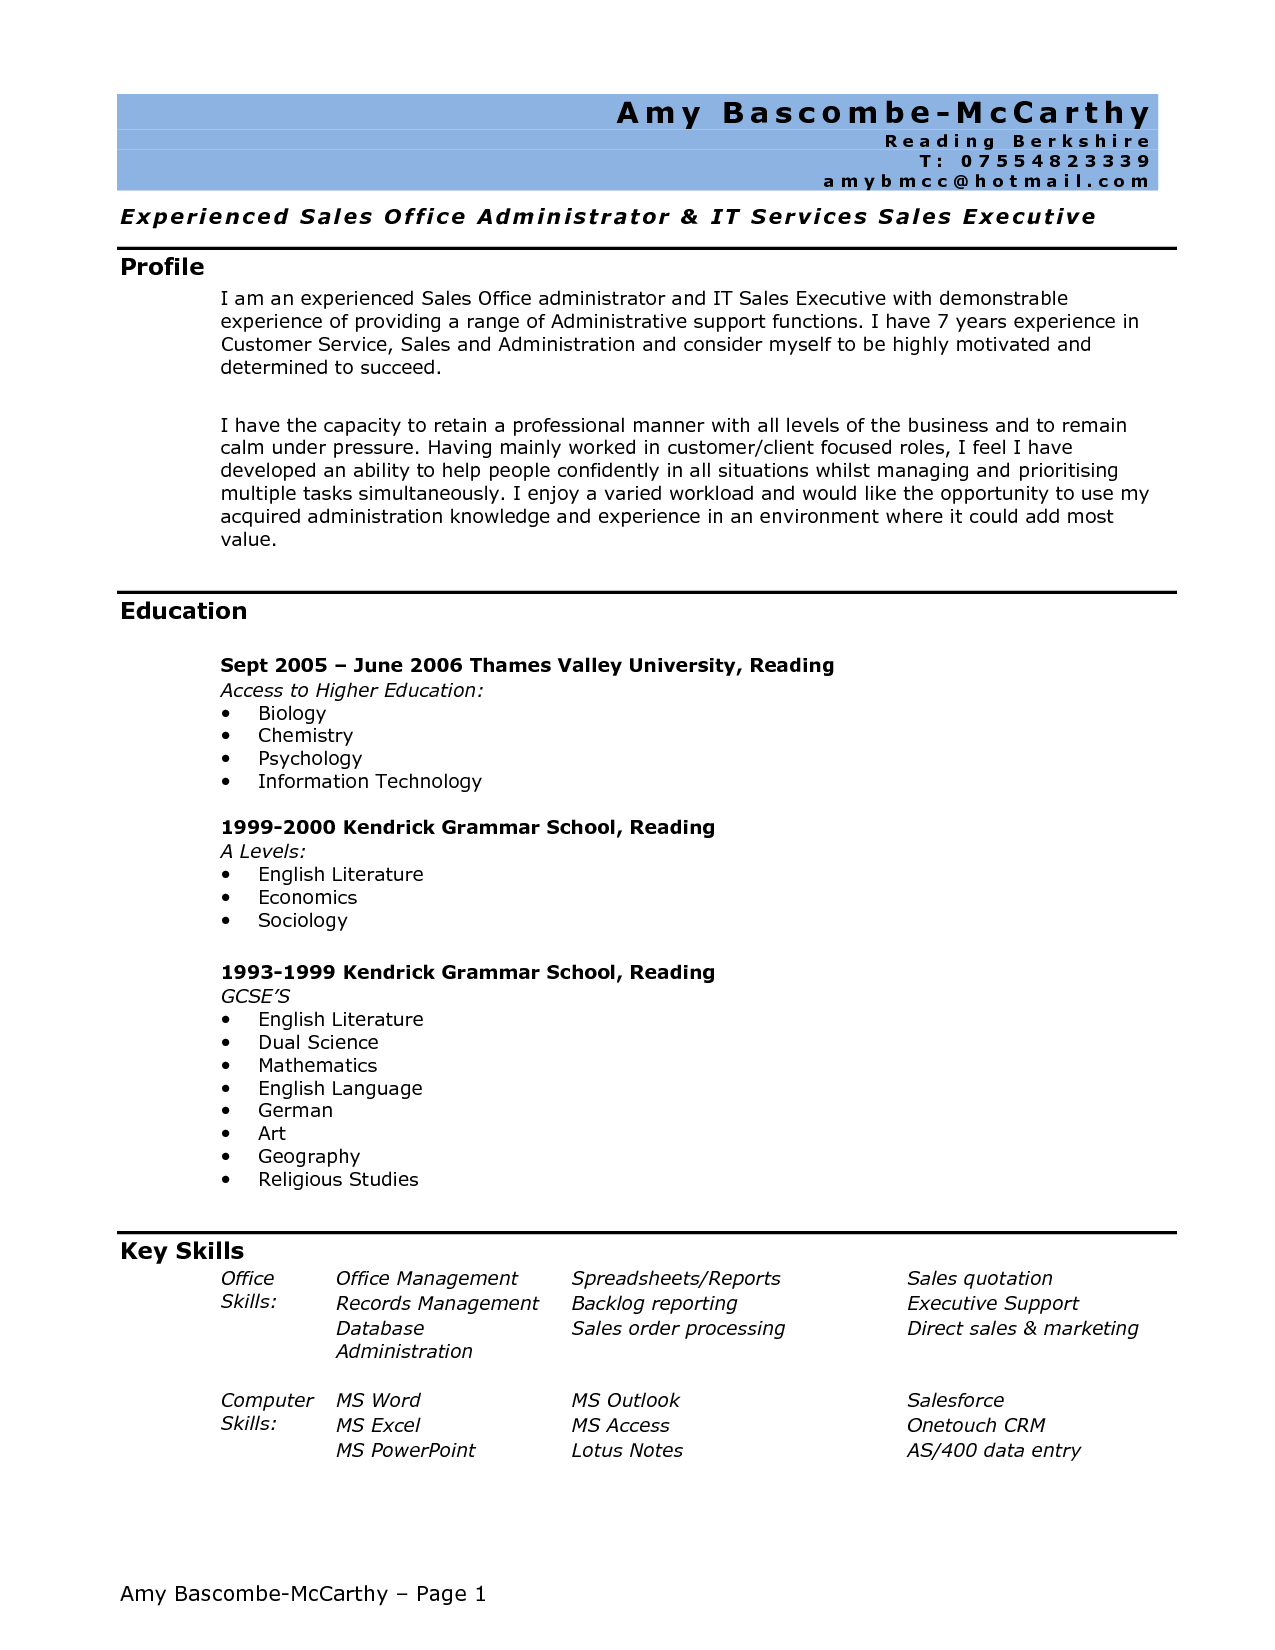 Written administrative assistant resume and cover letter